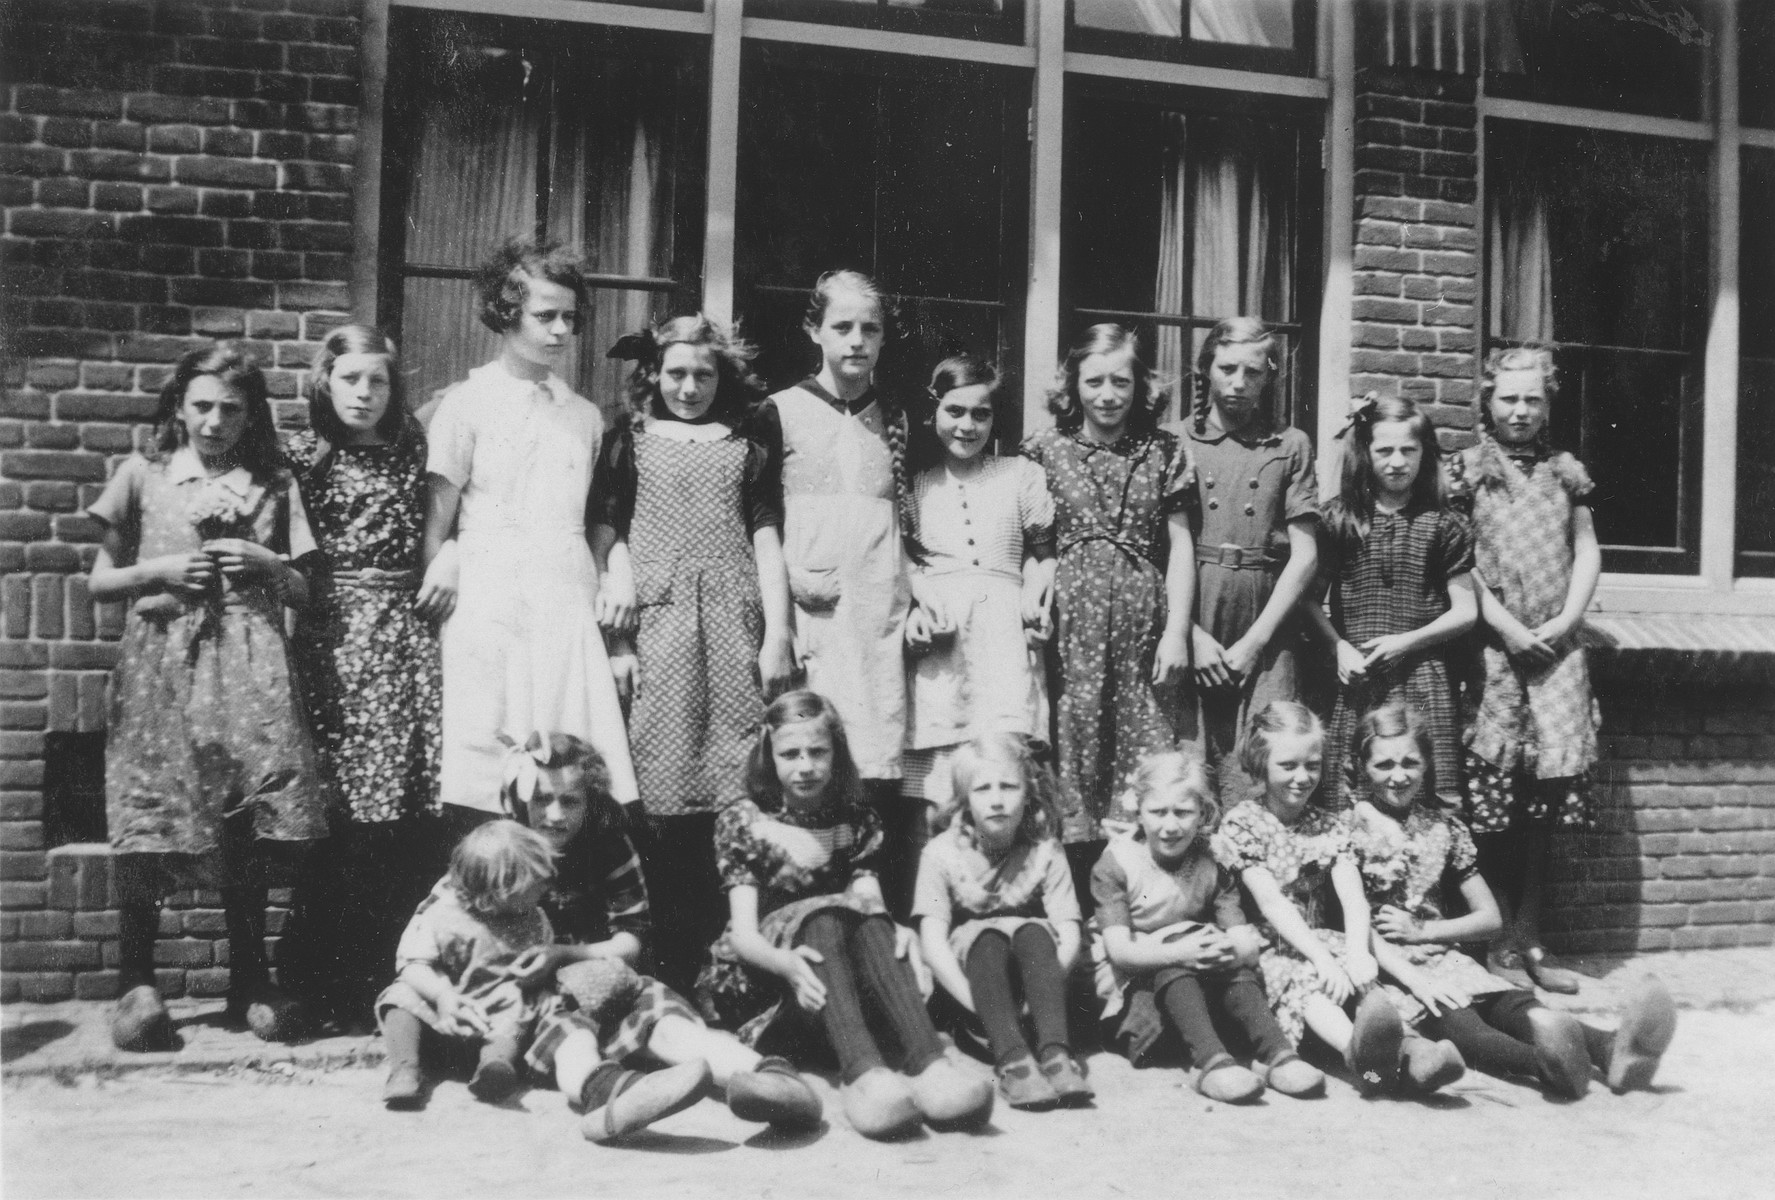 Two German Jewish refugee girls appear in a class photo of a village school in Hulshorst, Holland.  Gerda Bloch is pictured standing third from the left, and Doris Bloch is fifth from the right.